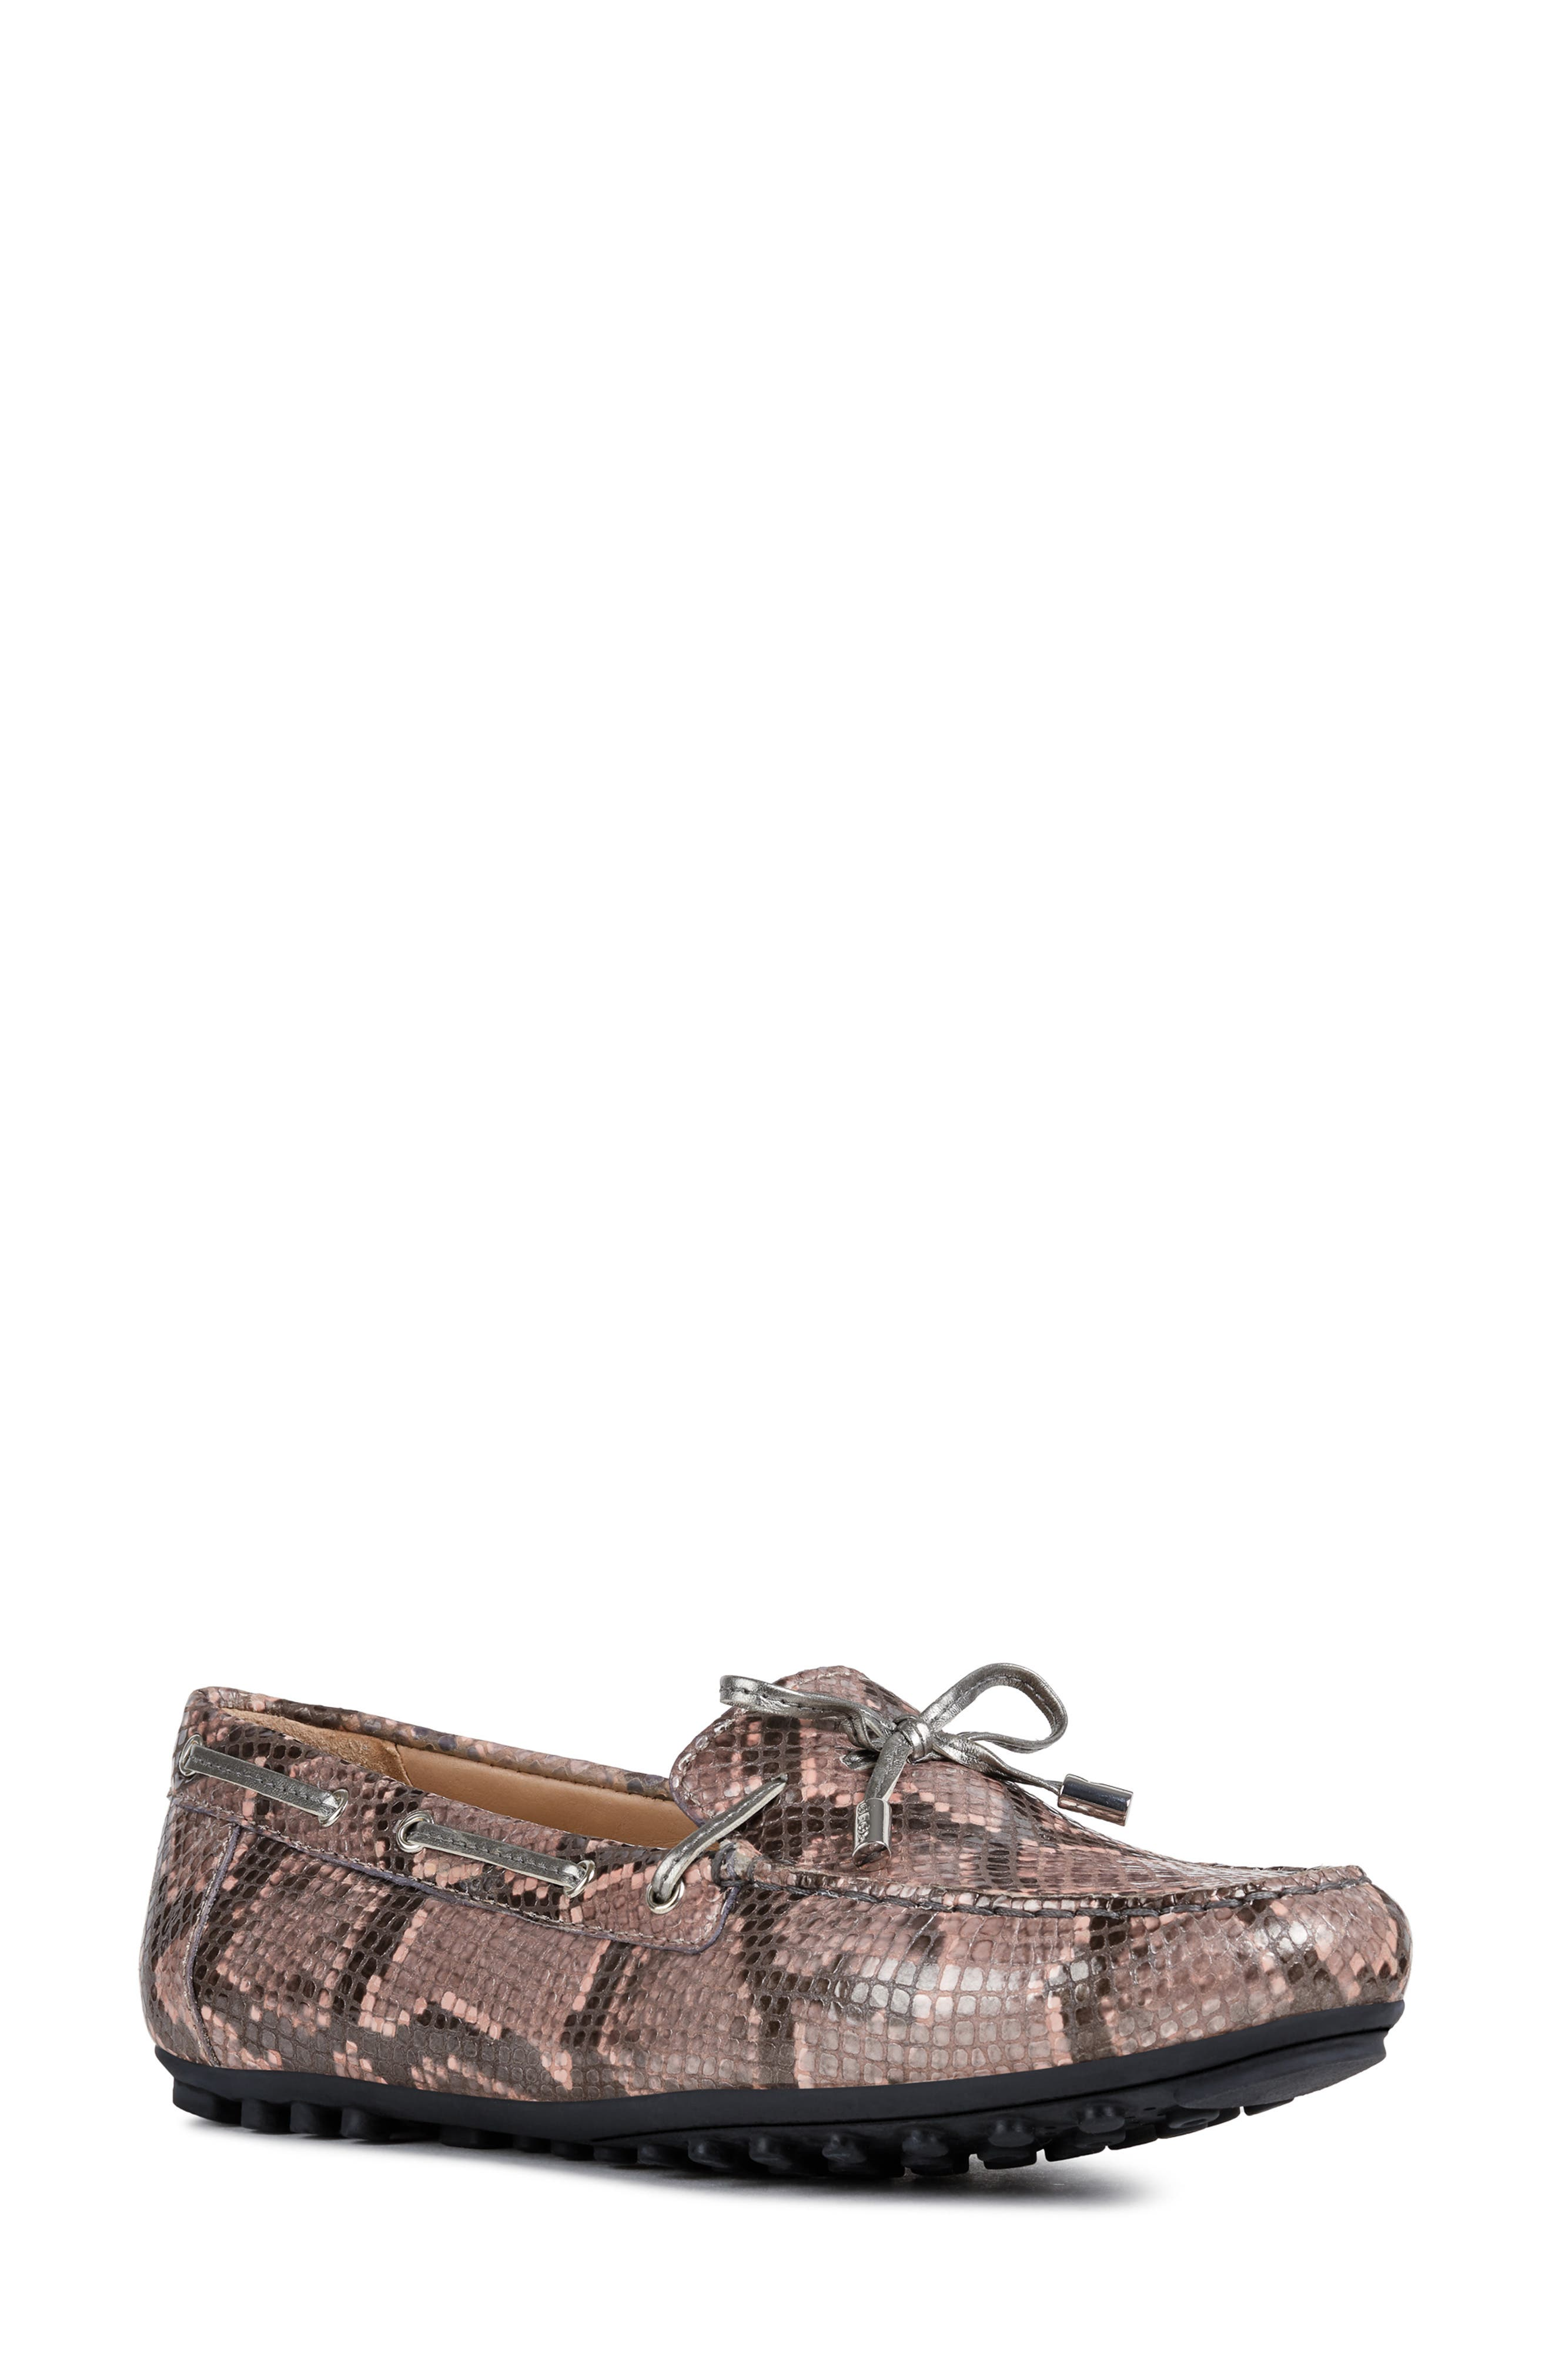 Geox Leelyan Leather Loafer, Pink